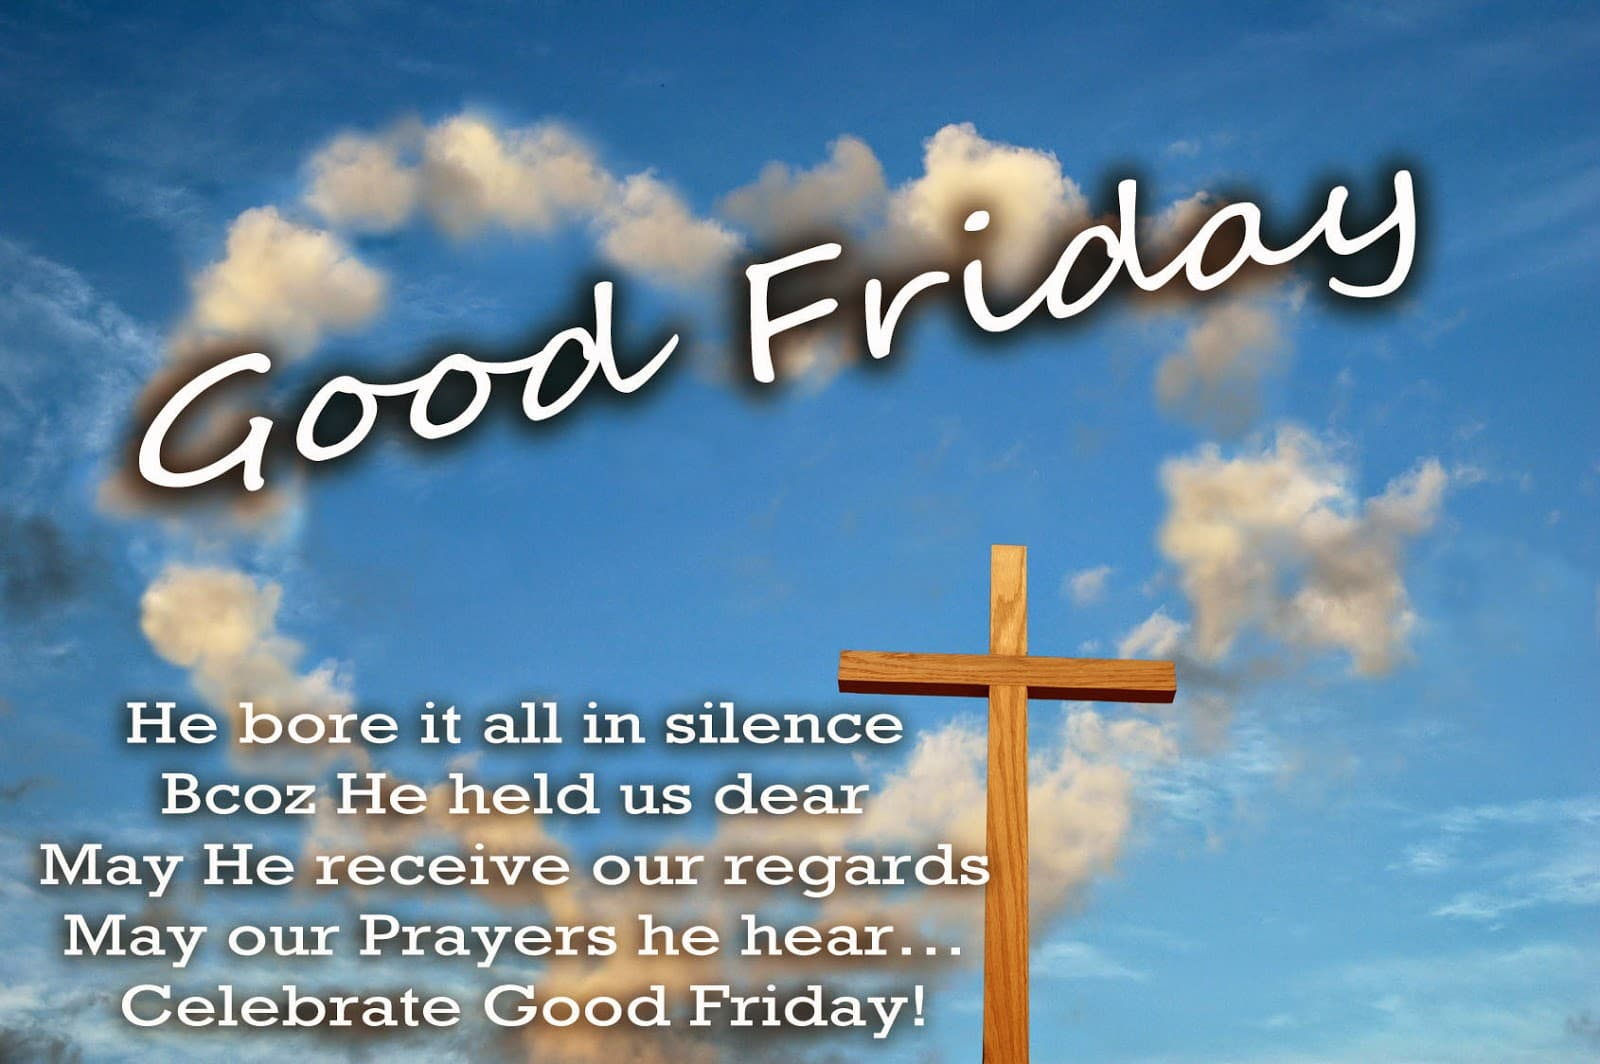 Good Friday Greetings Images Free Hd Images